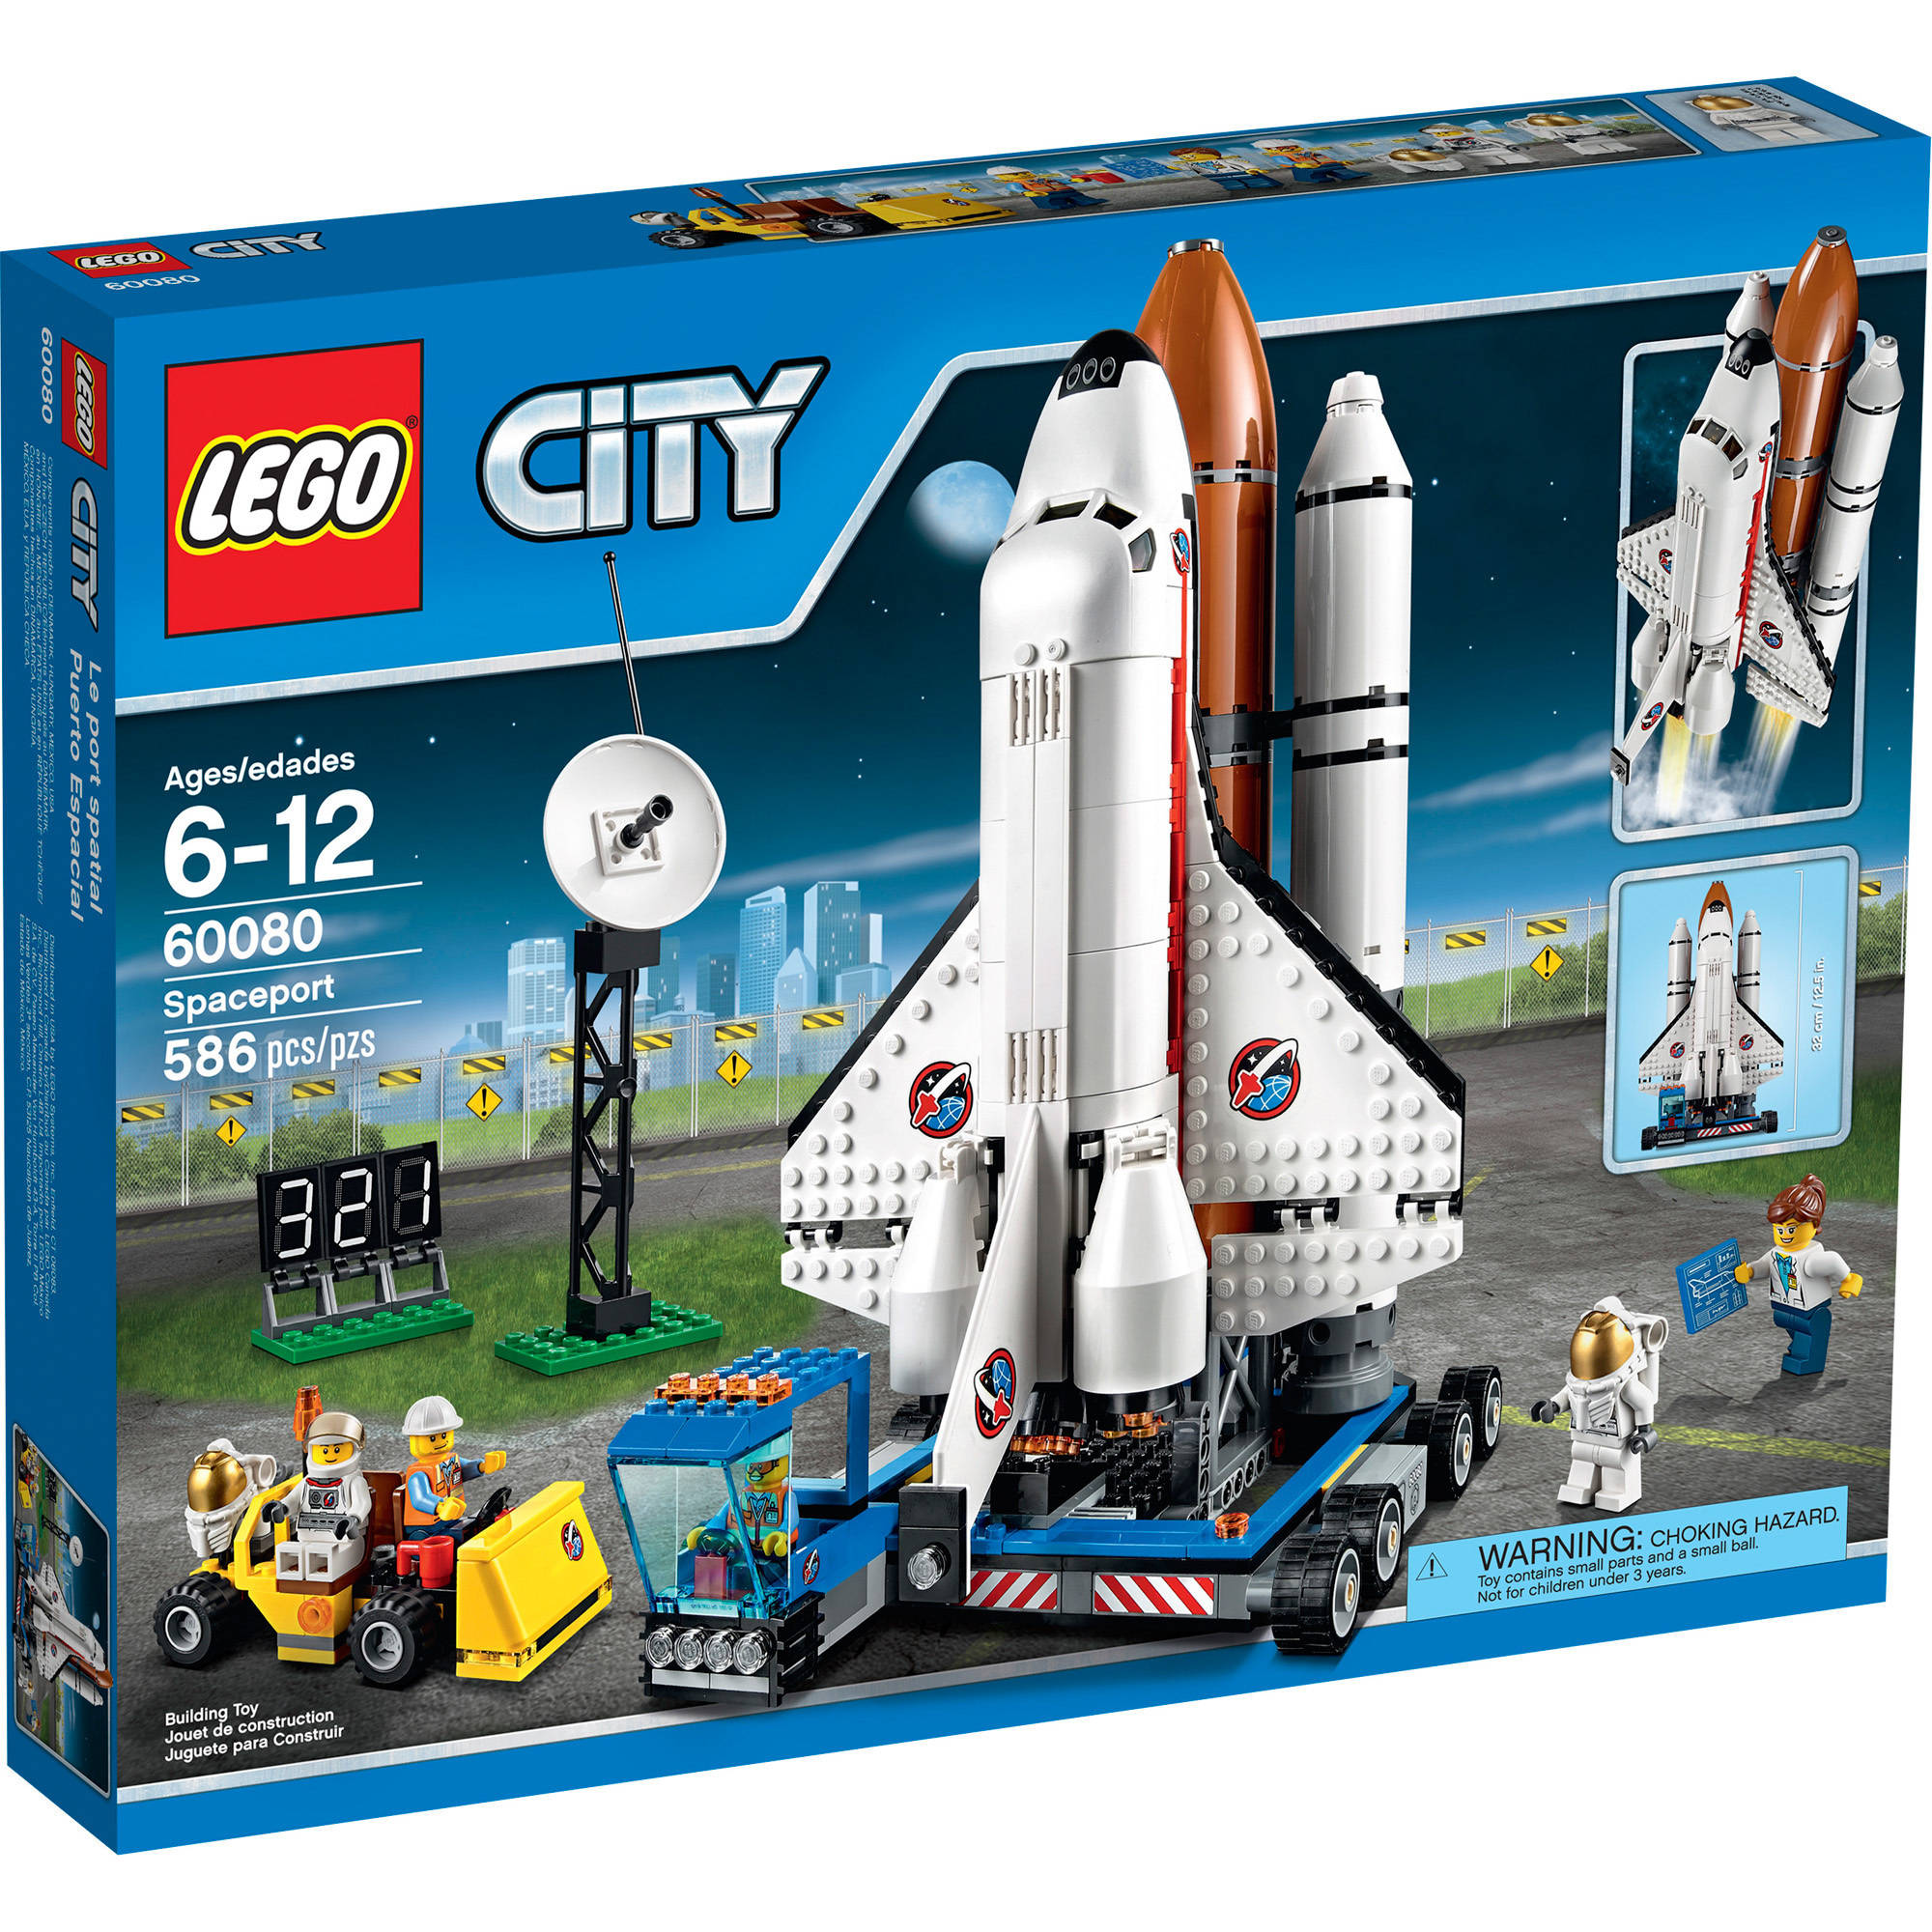 Lego City Space Port Spaceport, 60080 by LEGO Systems, Inc.